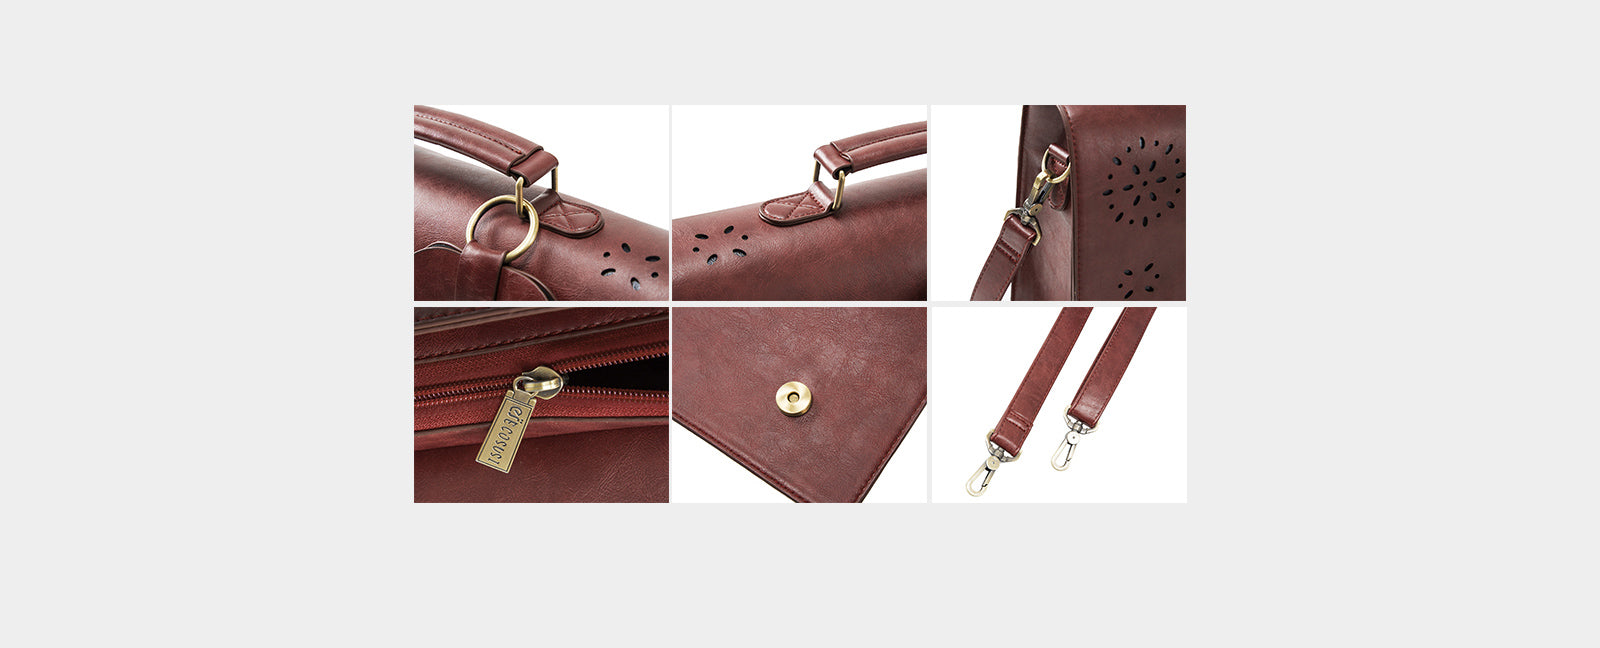 Ladies PU Leather Laptop Bag Briefcase Crossbody Messenger Bags Satchel Purse Fit 14inch Laptop